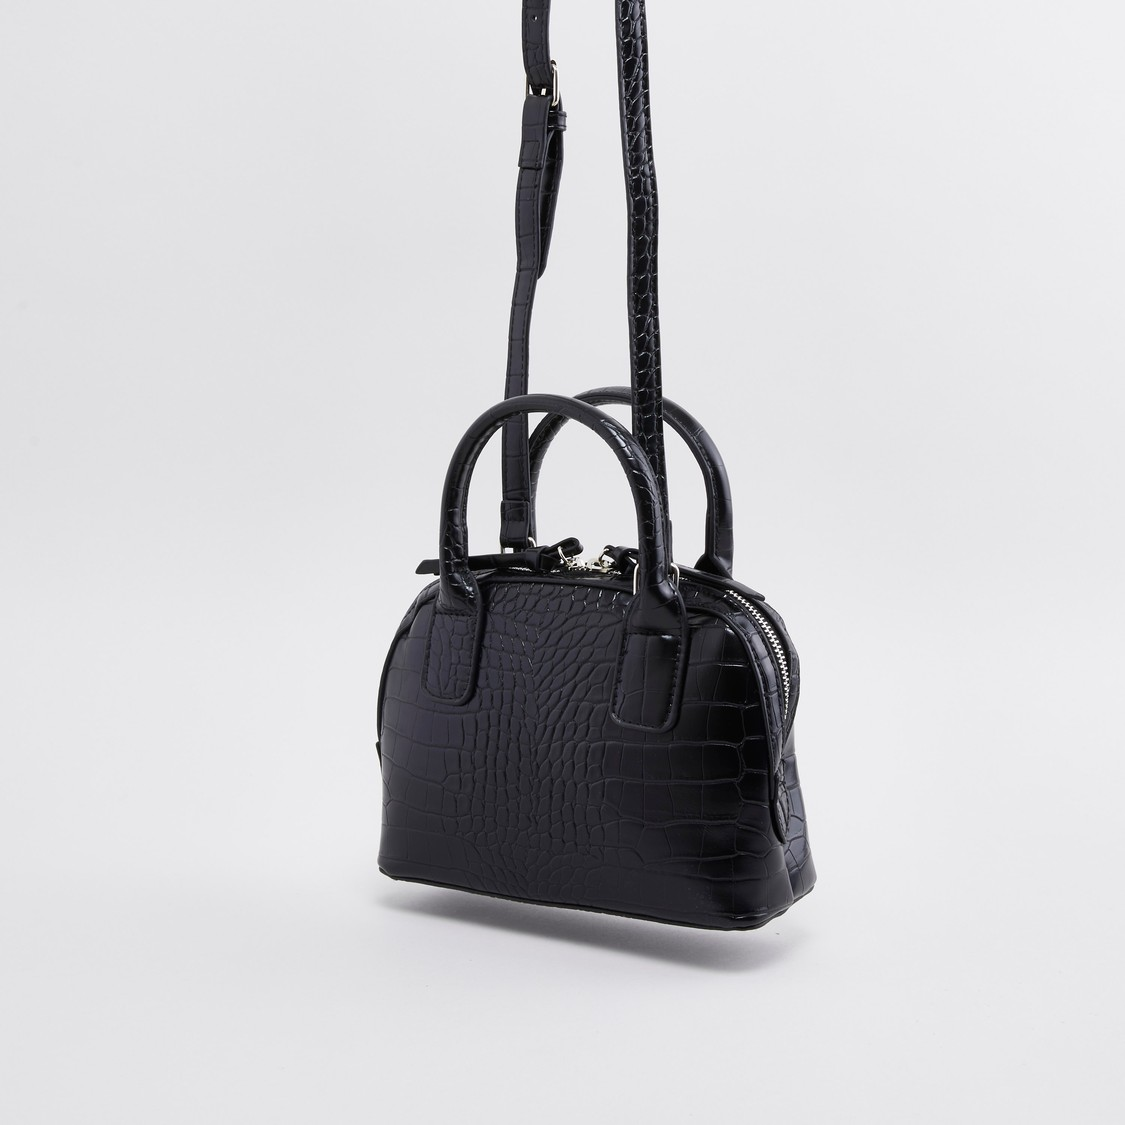 Textured Crossbody Bag with Twin Handles